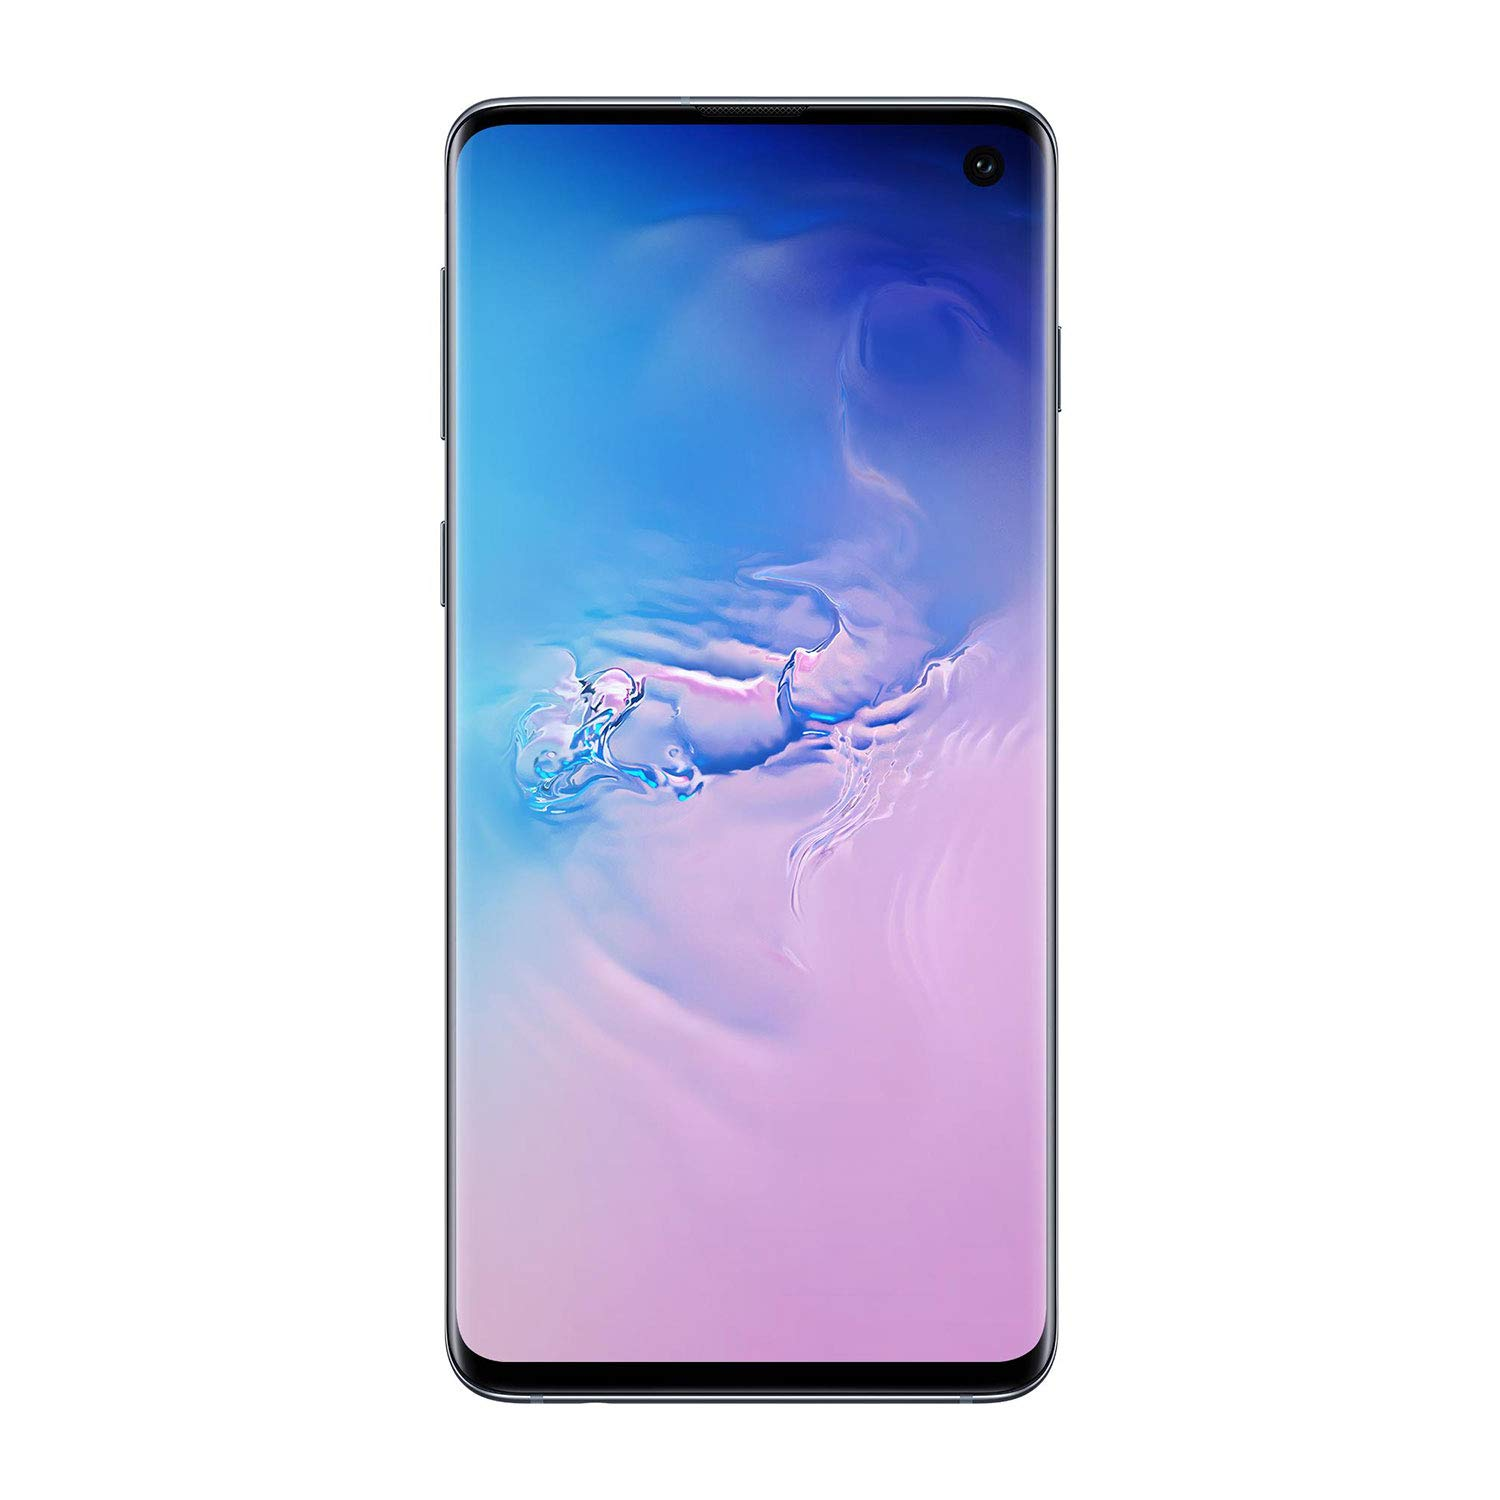 Samsung Galaxy S10 128GB / 8GB RAM SM-G973F Hybrid/Dual-SIM (GSM Only, No CDMA) Factory Unlocked 4G/LTE Smartphone - International Version (Prism ...